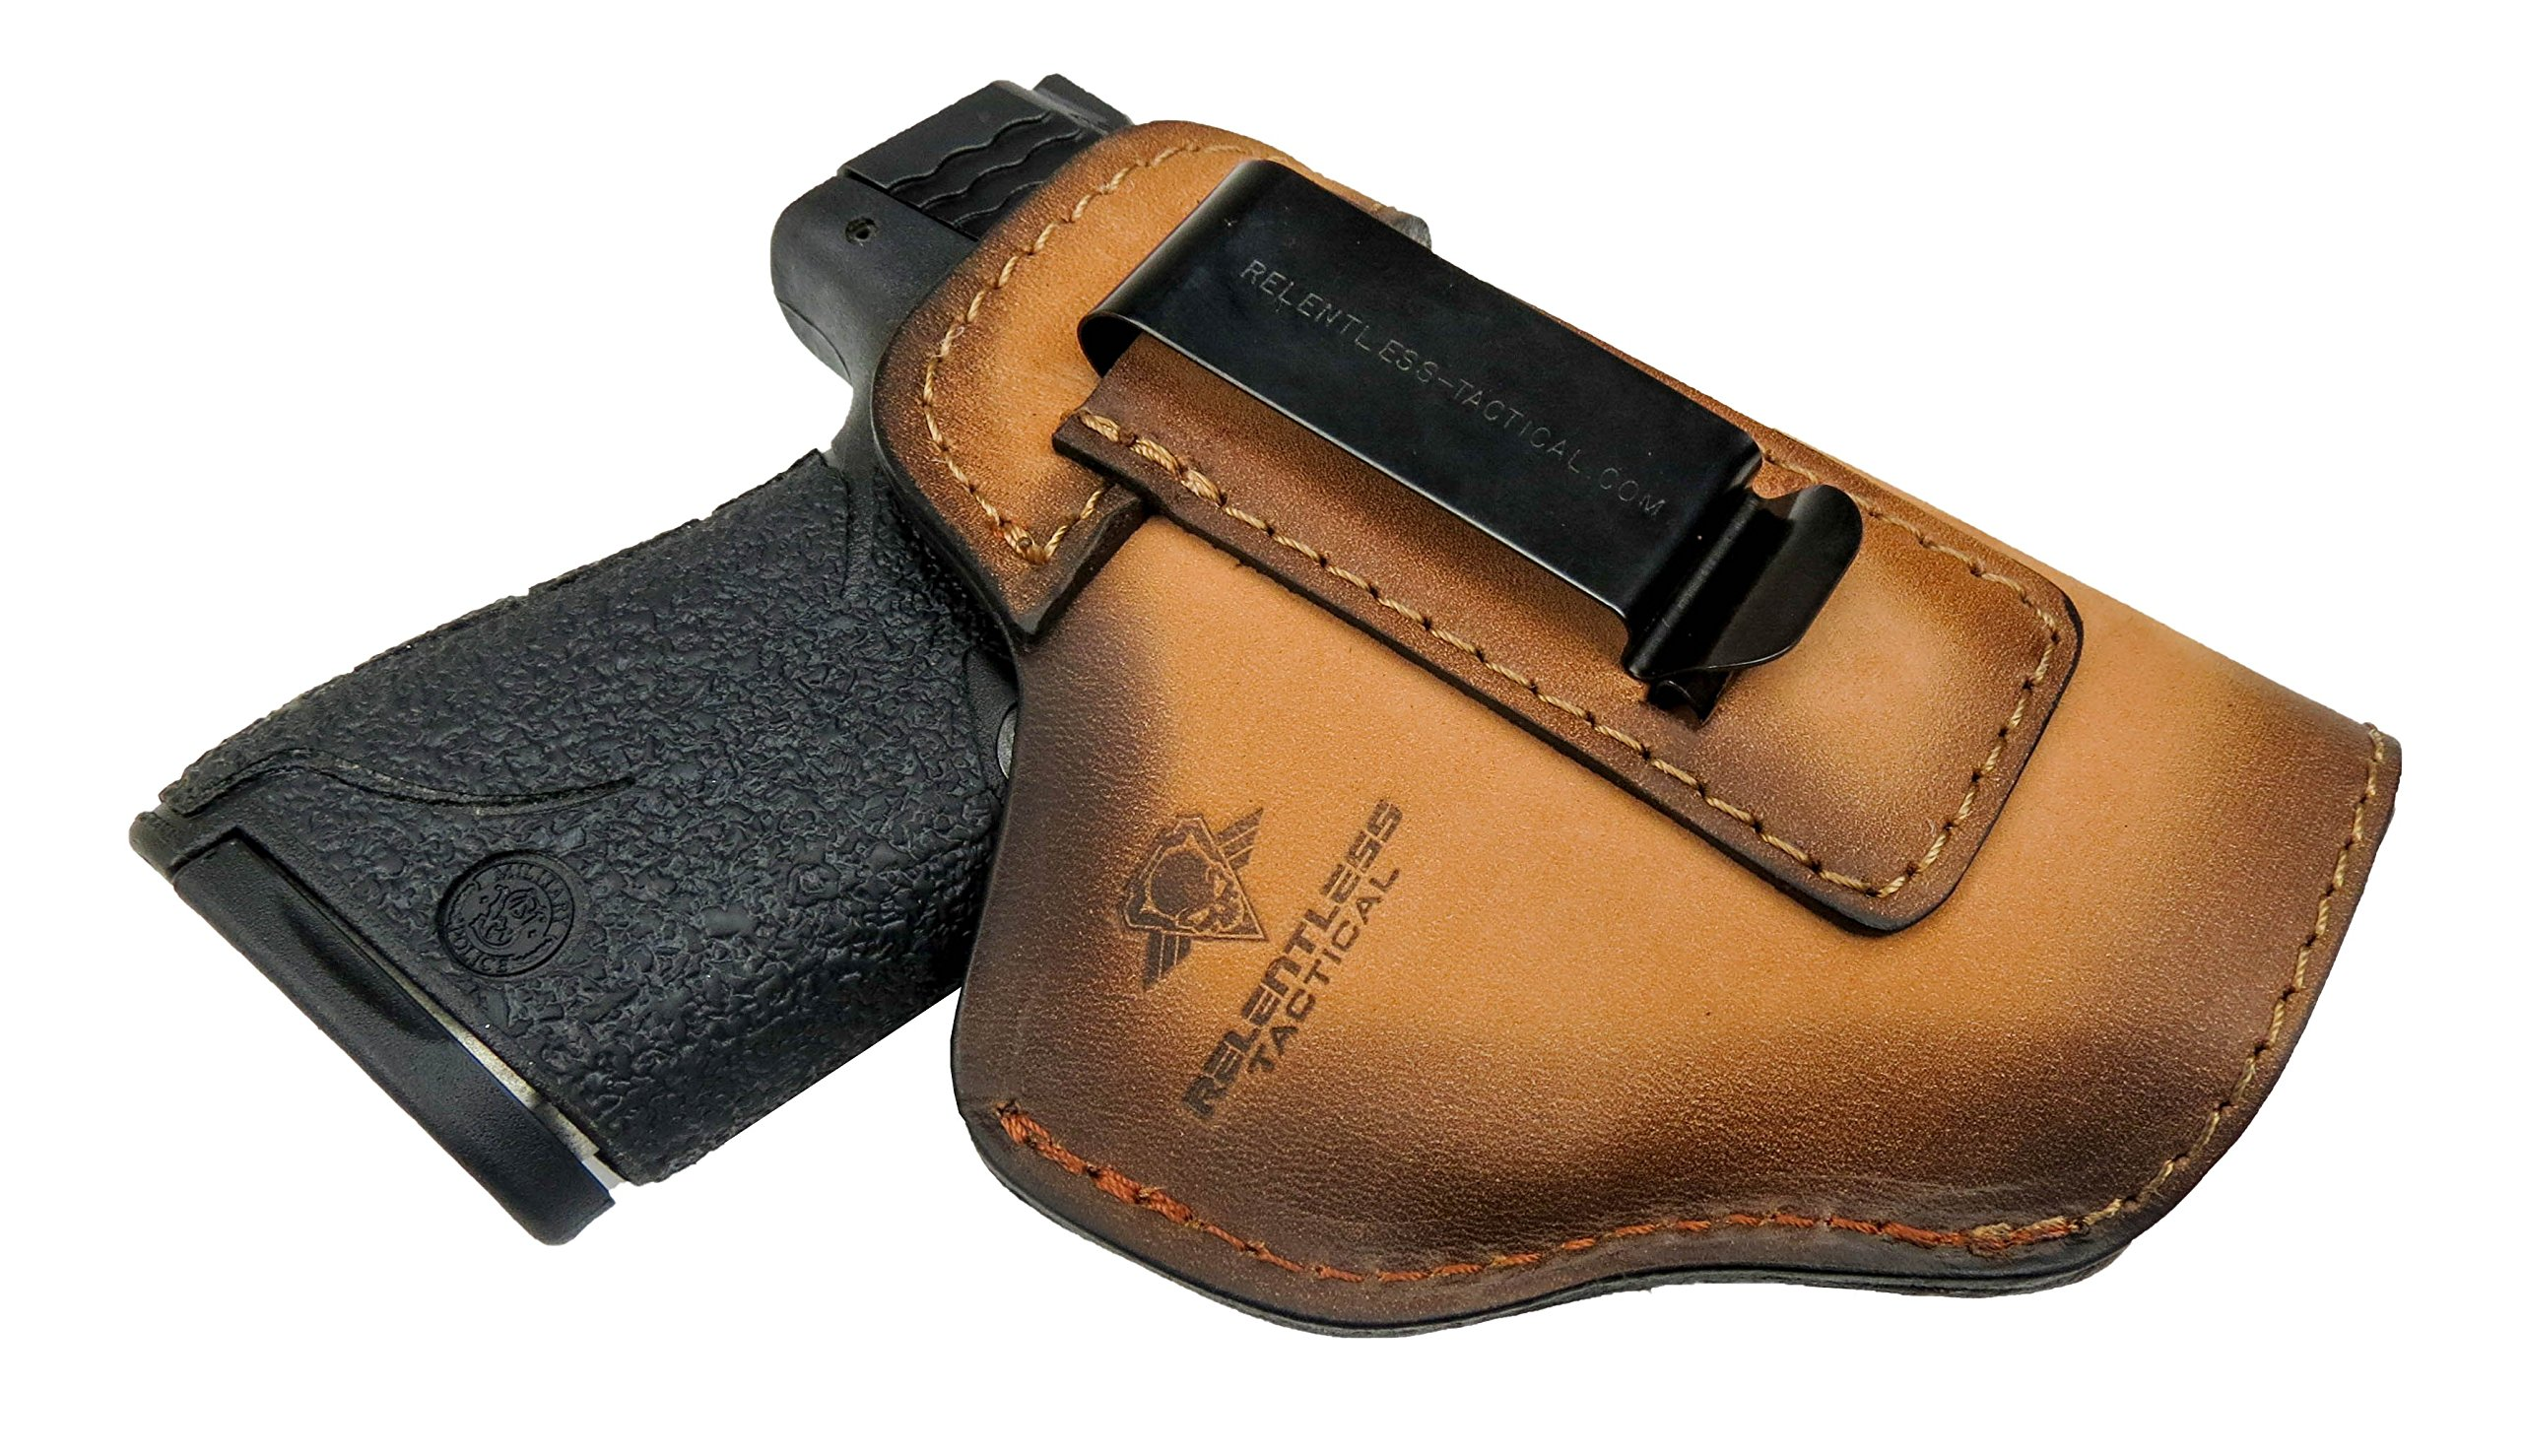 Relentless Tactical The Defender Leather IWB Holster - Made in USA - For S&W M&P Shield - GLOCK 17 19 22 23 32 33/Springfield XD & XDS/Plus All Similar Sized Handguns - Charred Oak - Right Handed by Relentless Tactical